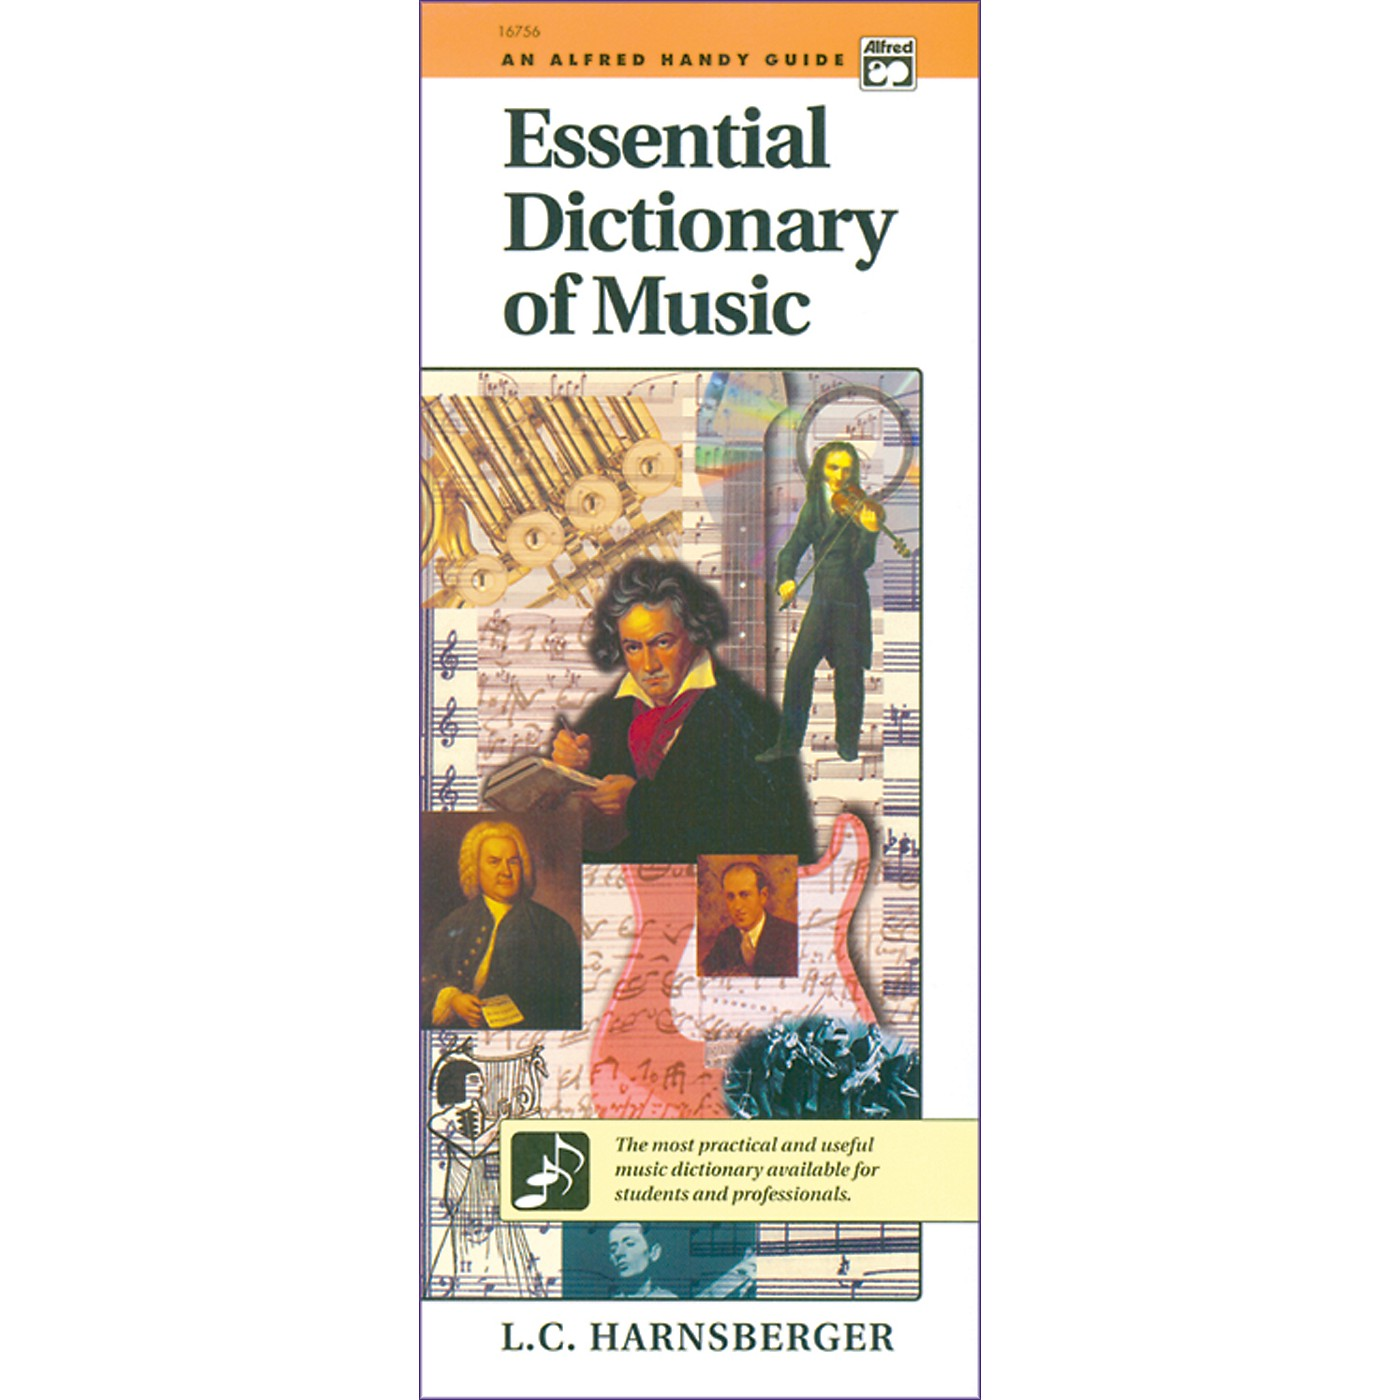 Alfred Essential Dictionary of Music  Handy Guide thumbnail